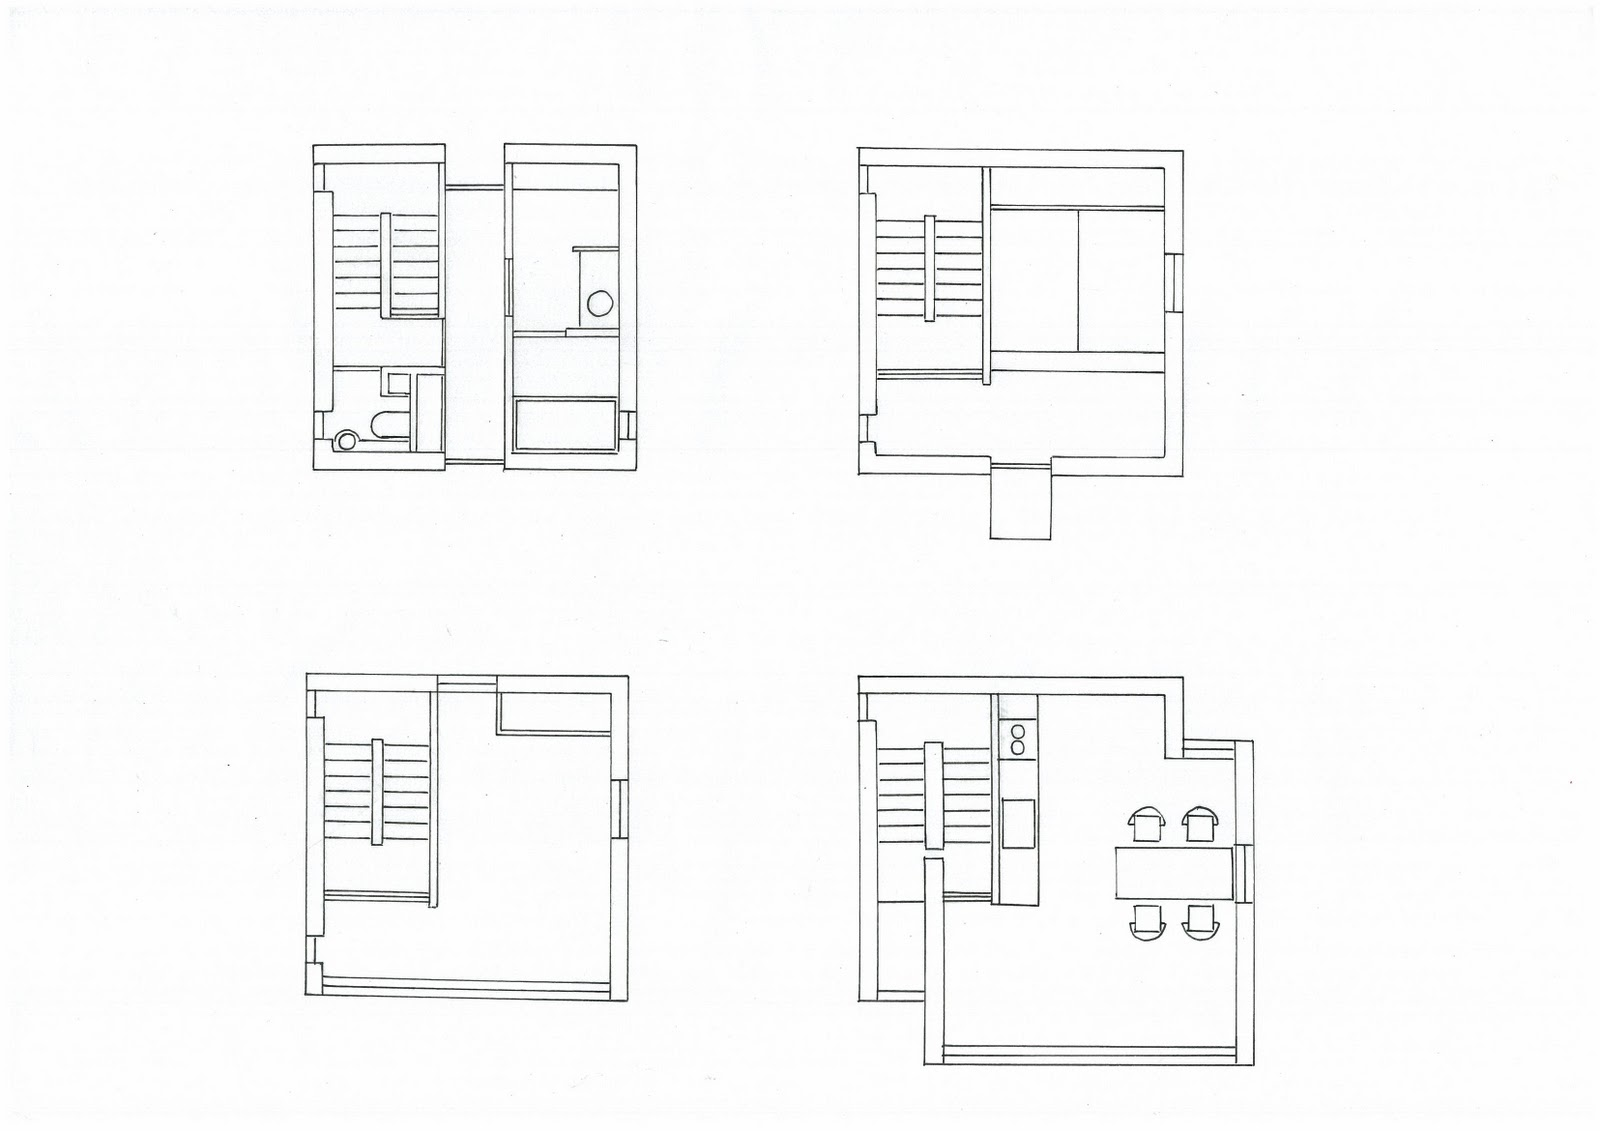 Adobe House Plans moreover 5b359afbe591fe52 Small Two Bedroom House Plans Small Home Plan House Design in addition Interior Ak Fuses Simplicity And Upcycling To Create A Modern Home further Starwars House By Moon Hoon In Korea additionally Royalty Free Stock Images Modern Interior Design Kitchen Freehand Drawing Image13298949. on modern small house plans